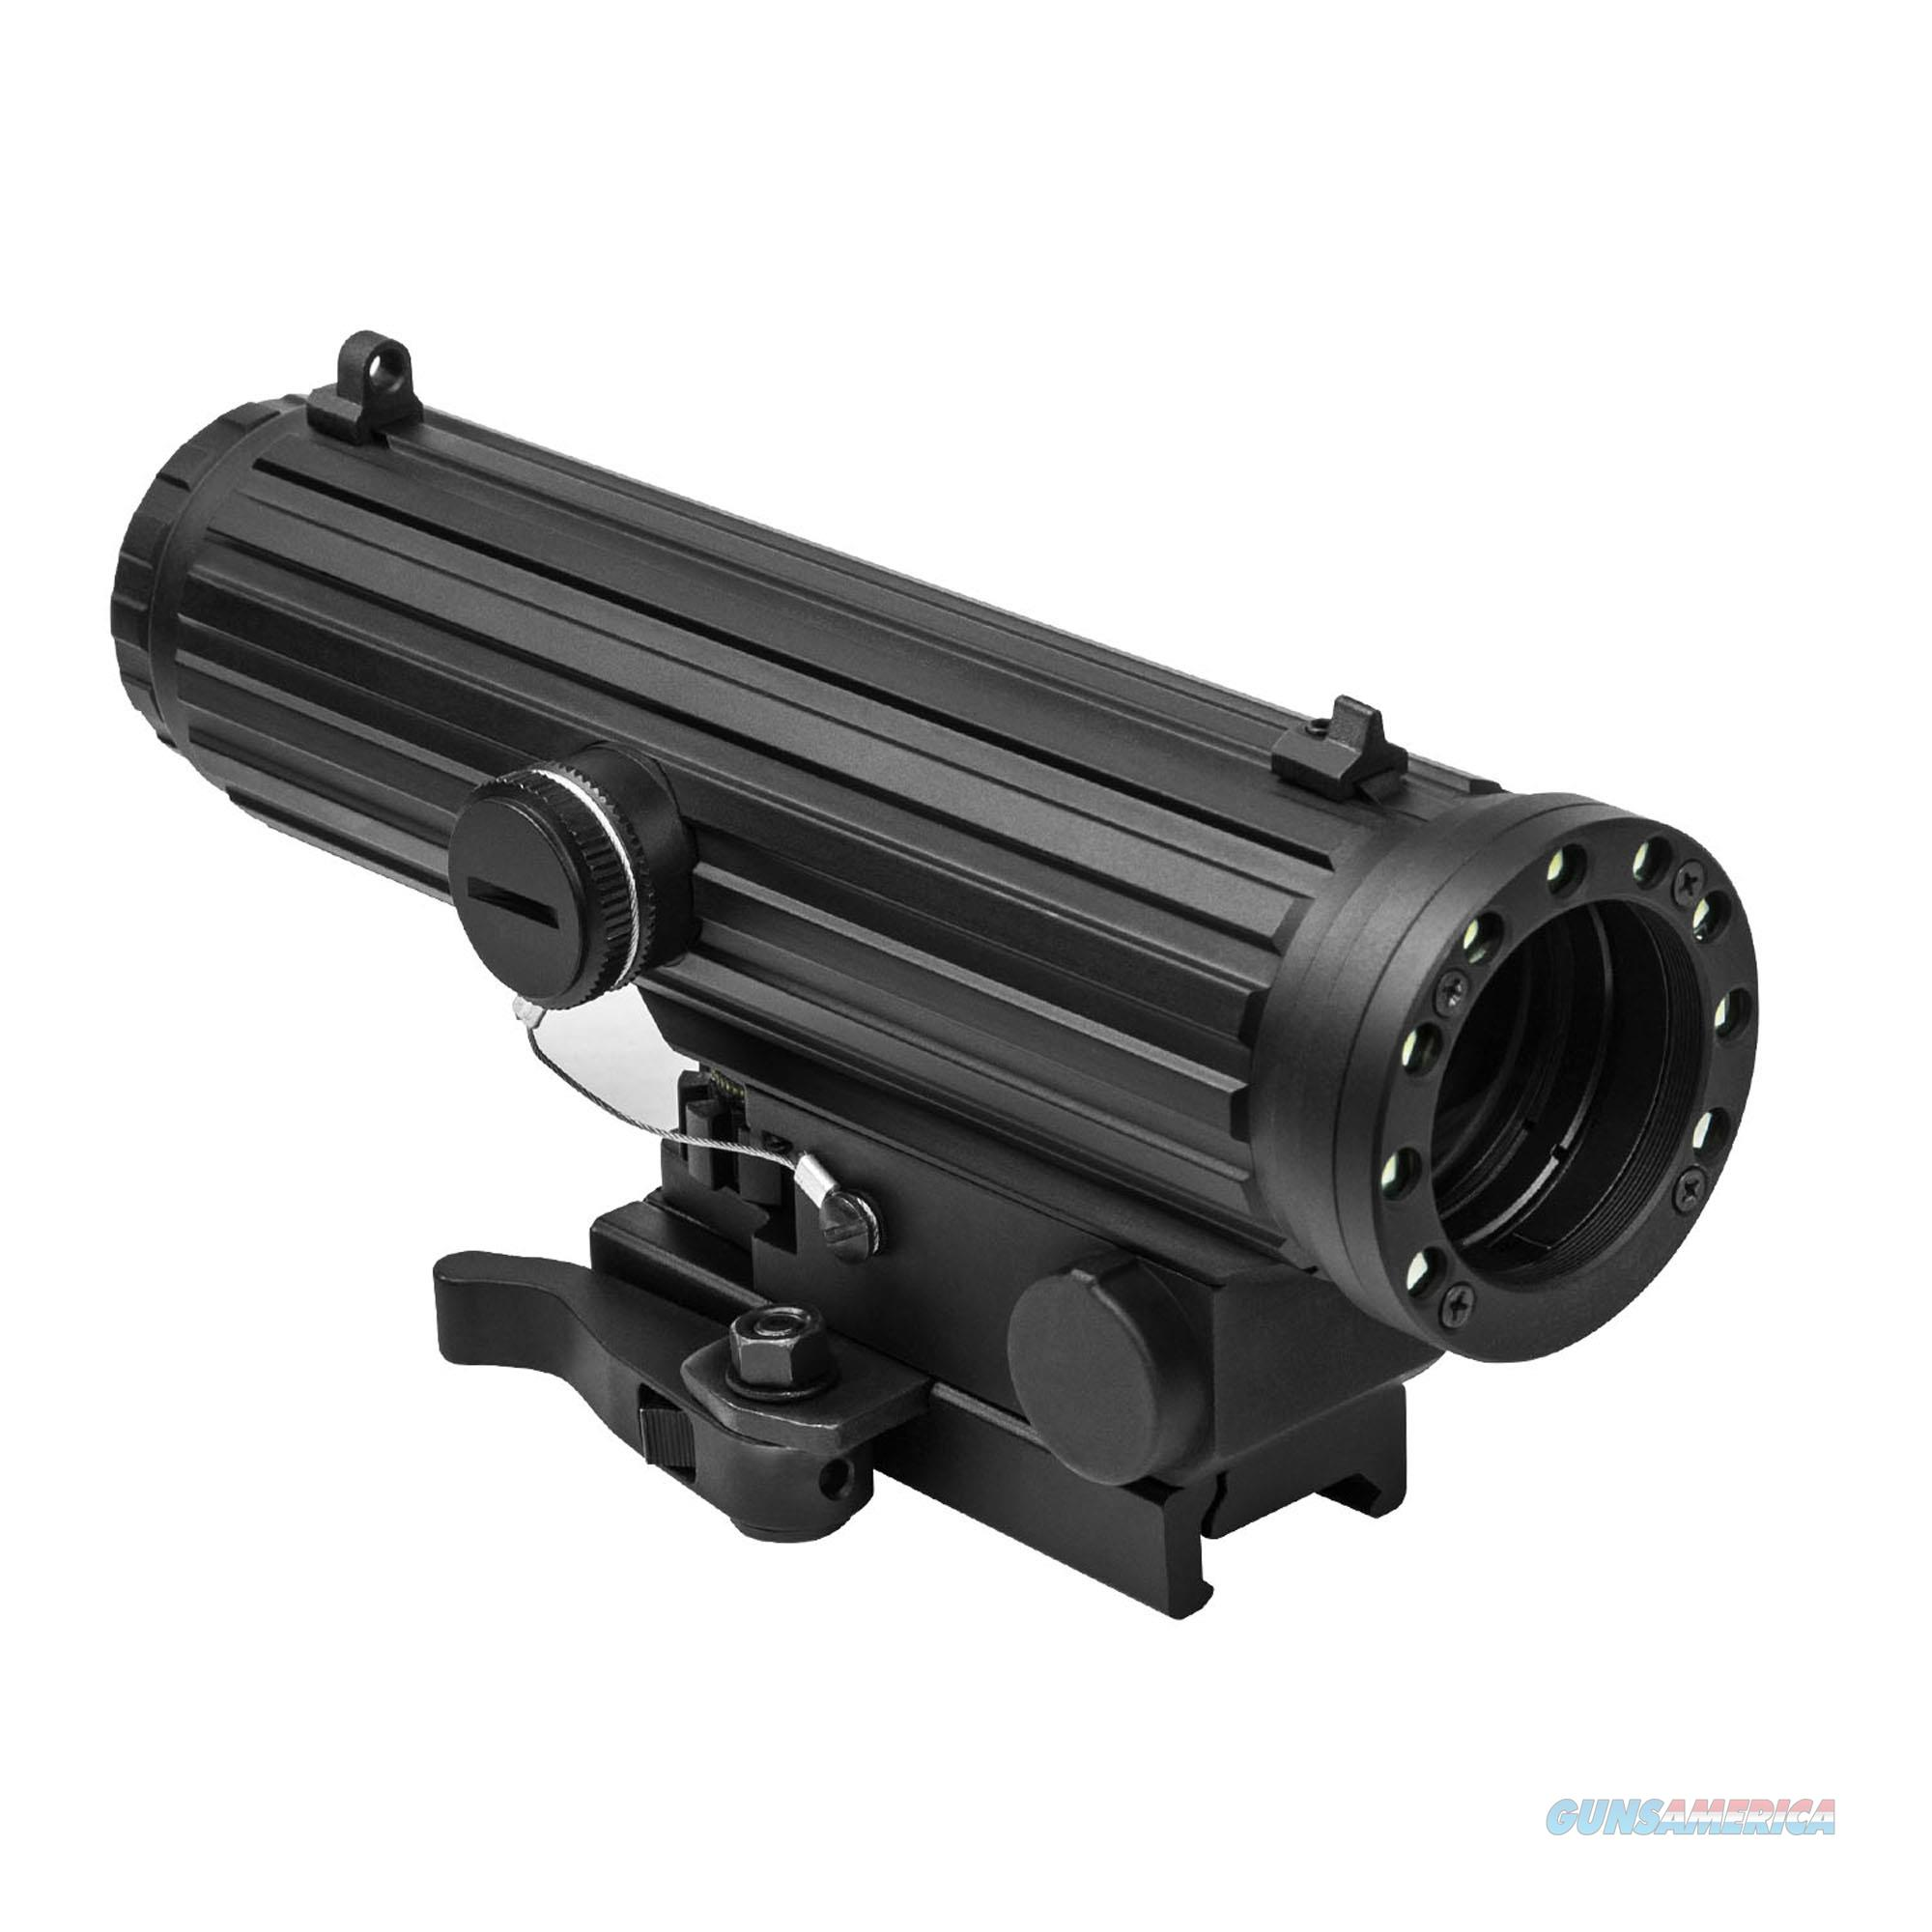 Nc Star Lio 4X34 Scope/Red & White Led Nav Lights VHLO434GB  Non-Guns > Iron/Metal/Peep Sights